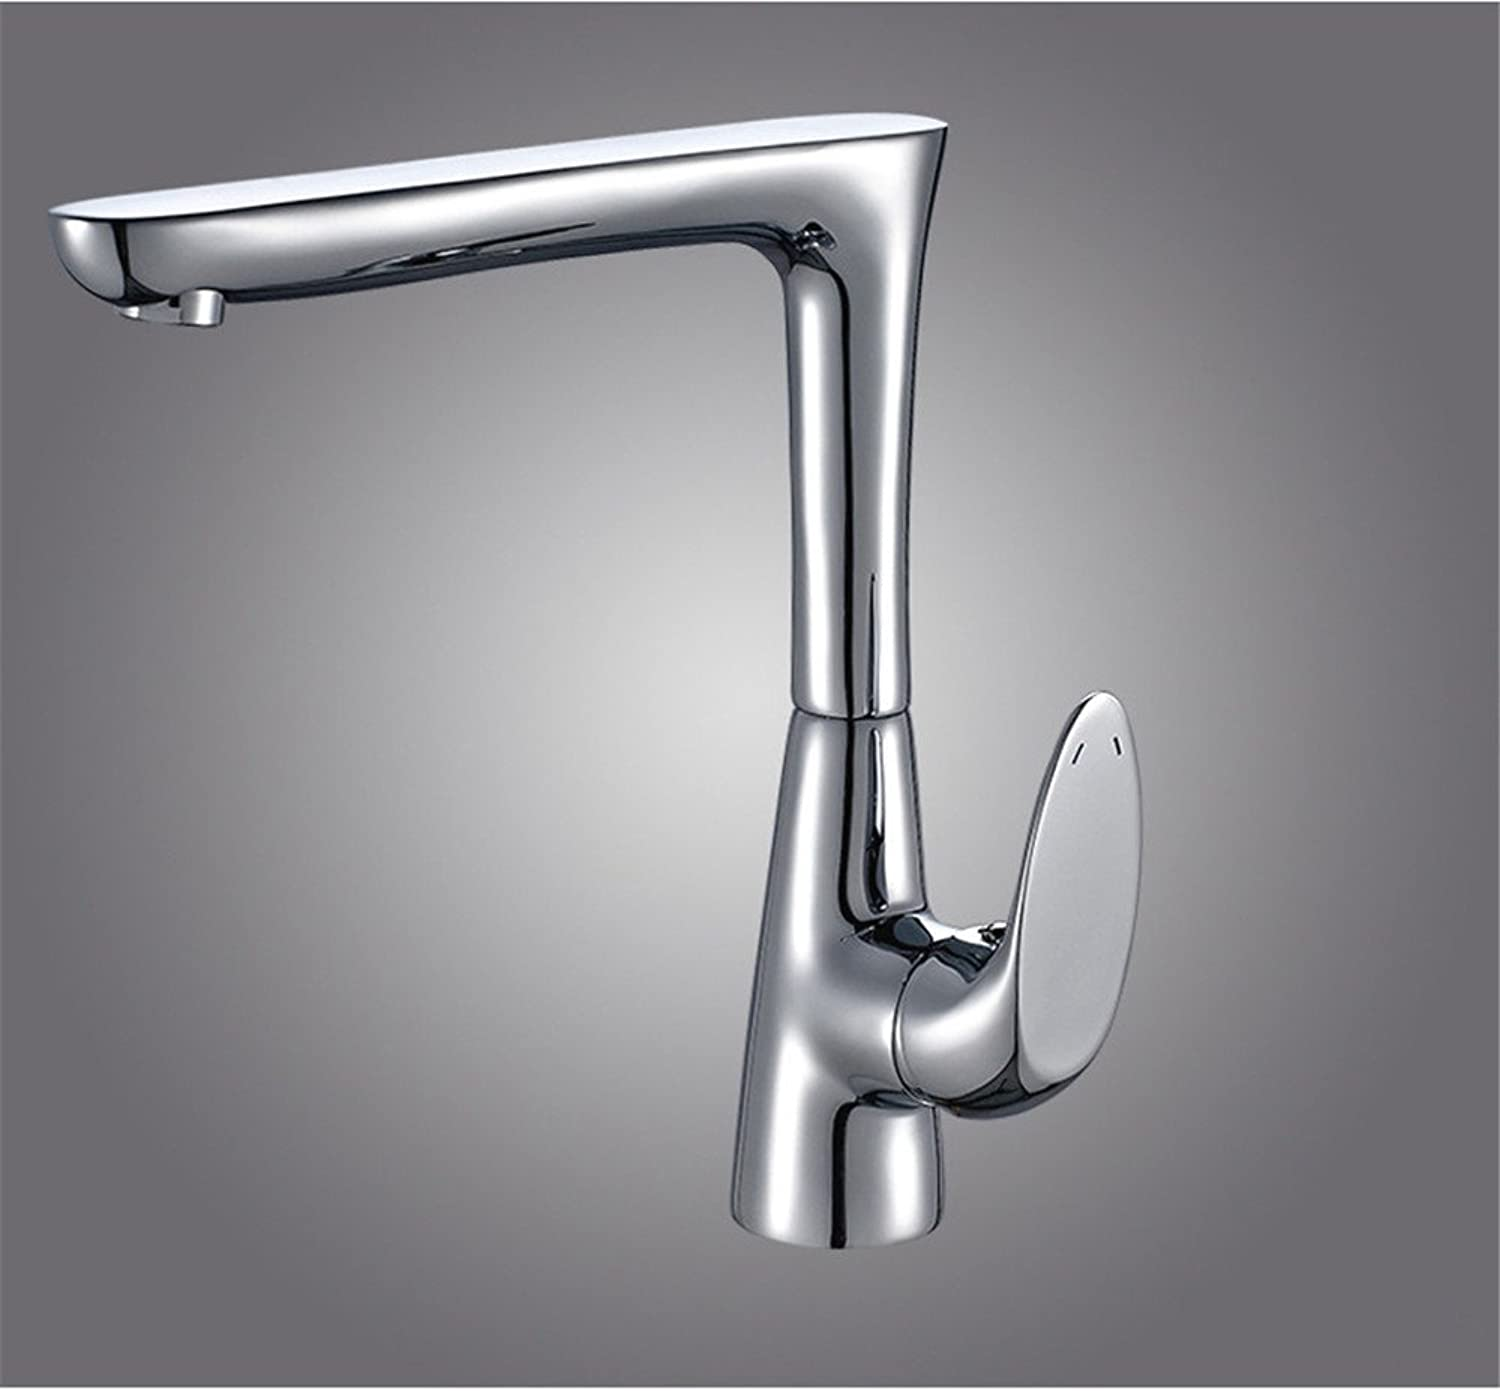 Hlluya Professional Sink Mixer Tap Kitchen Faucet The Brass chrome faucet kitchen sink faucet mixing of hot and cold water to redate the tap Faucet